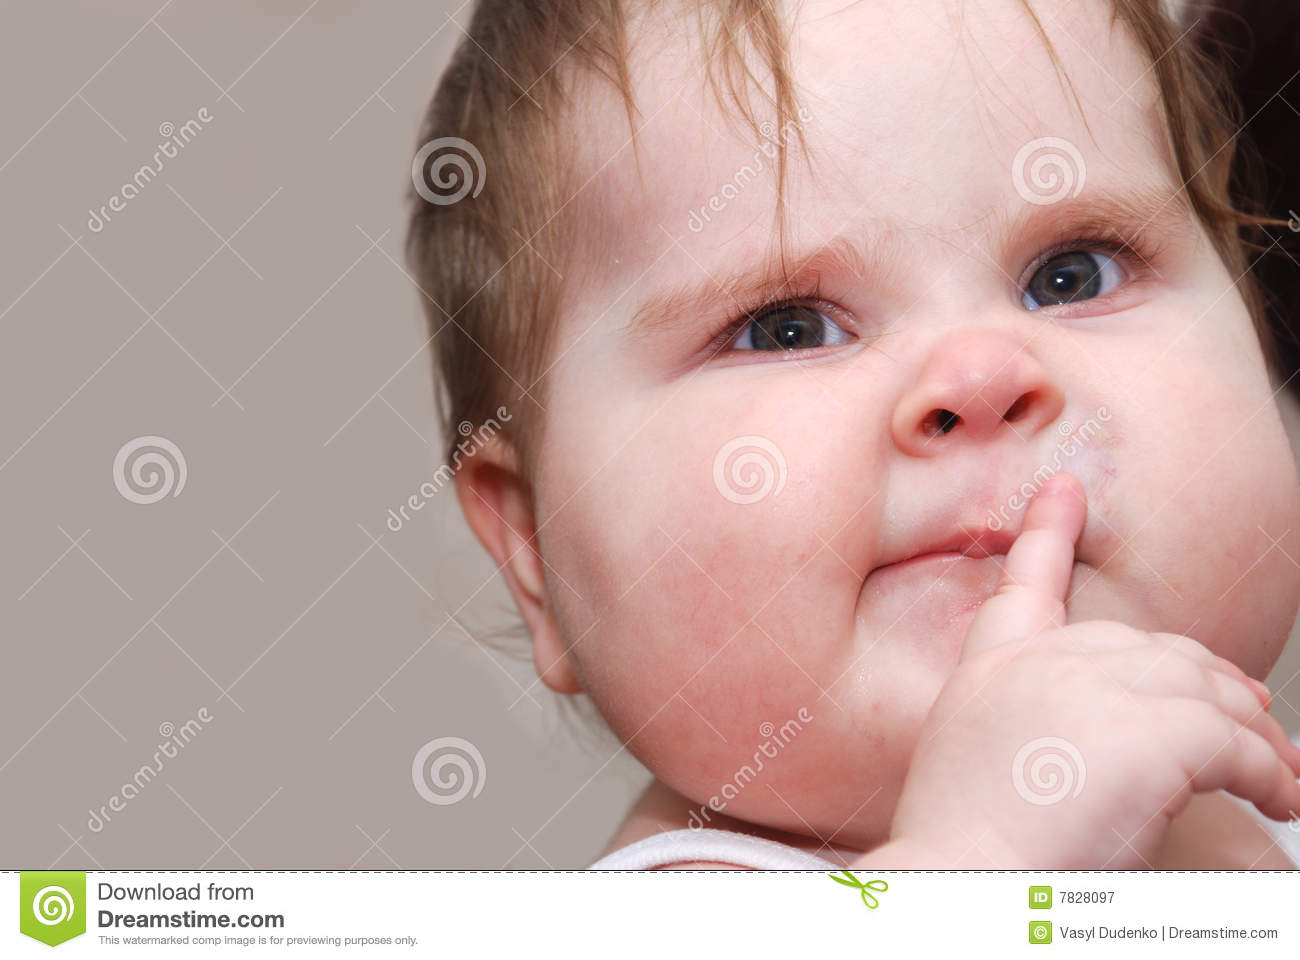 Funny Baby Stock Image Image Of Portrait Caucasian Sweet 7828097